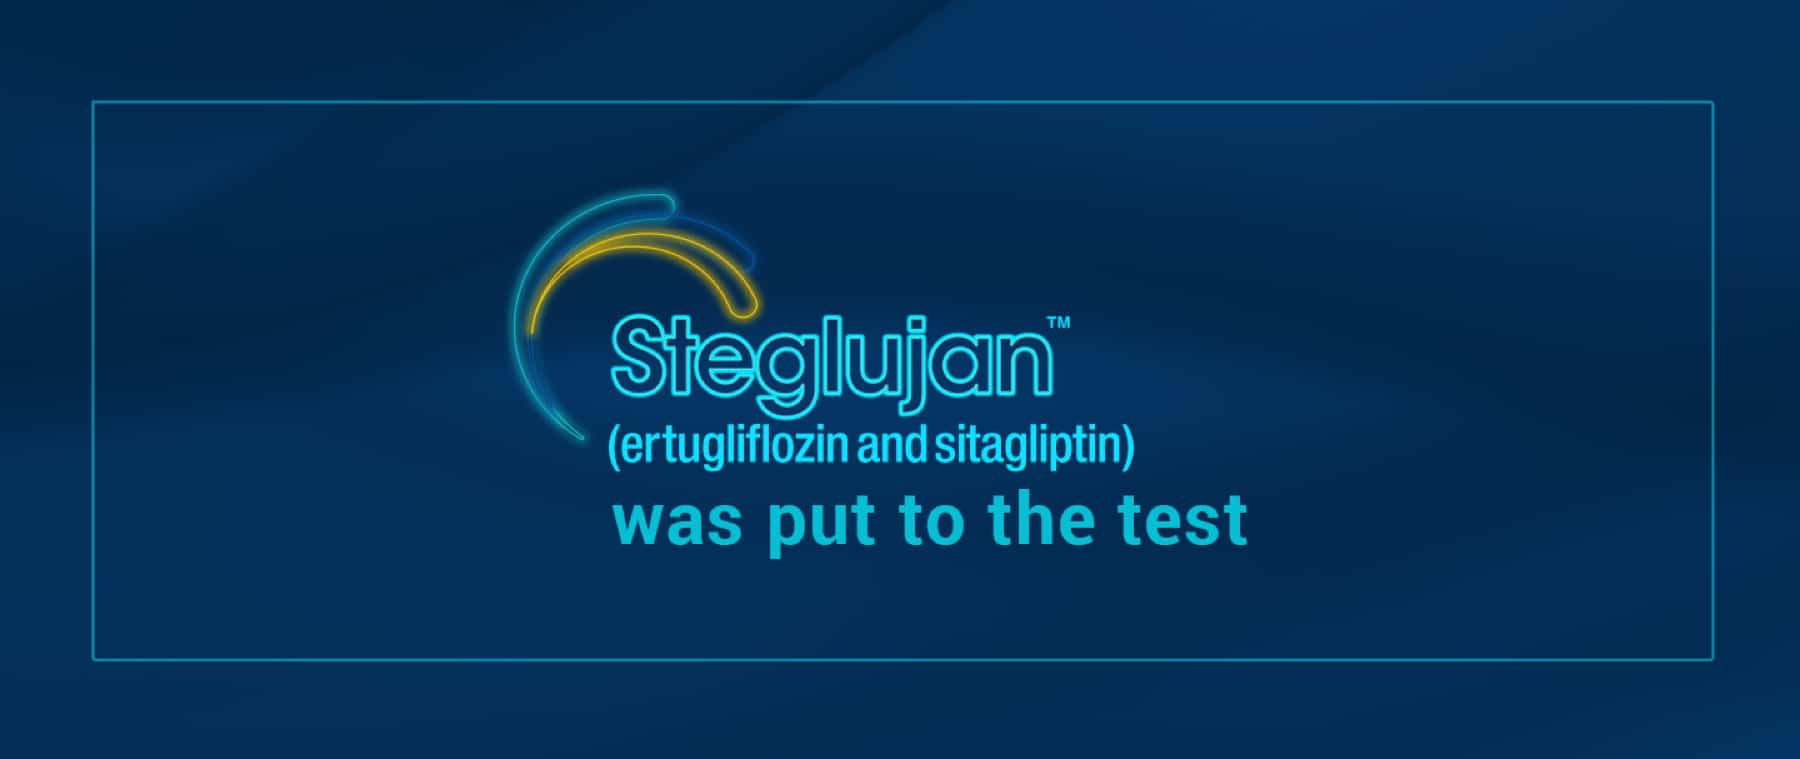 View Results From a 26-week Trial of STEGLUJAN™ (ertugliflozin and sitagliptin)